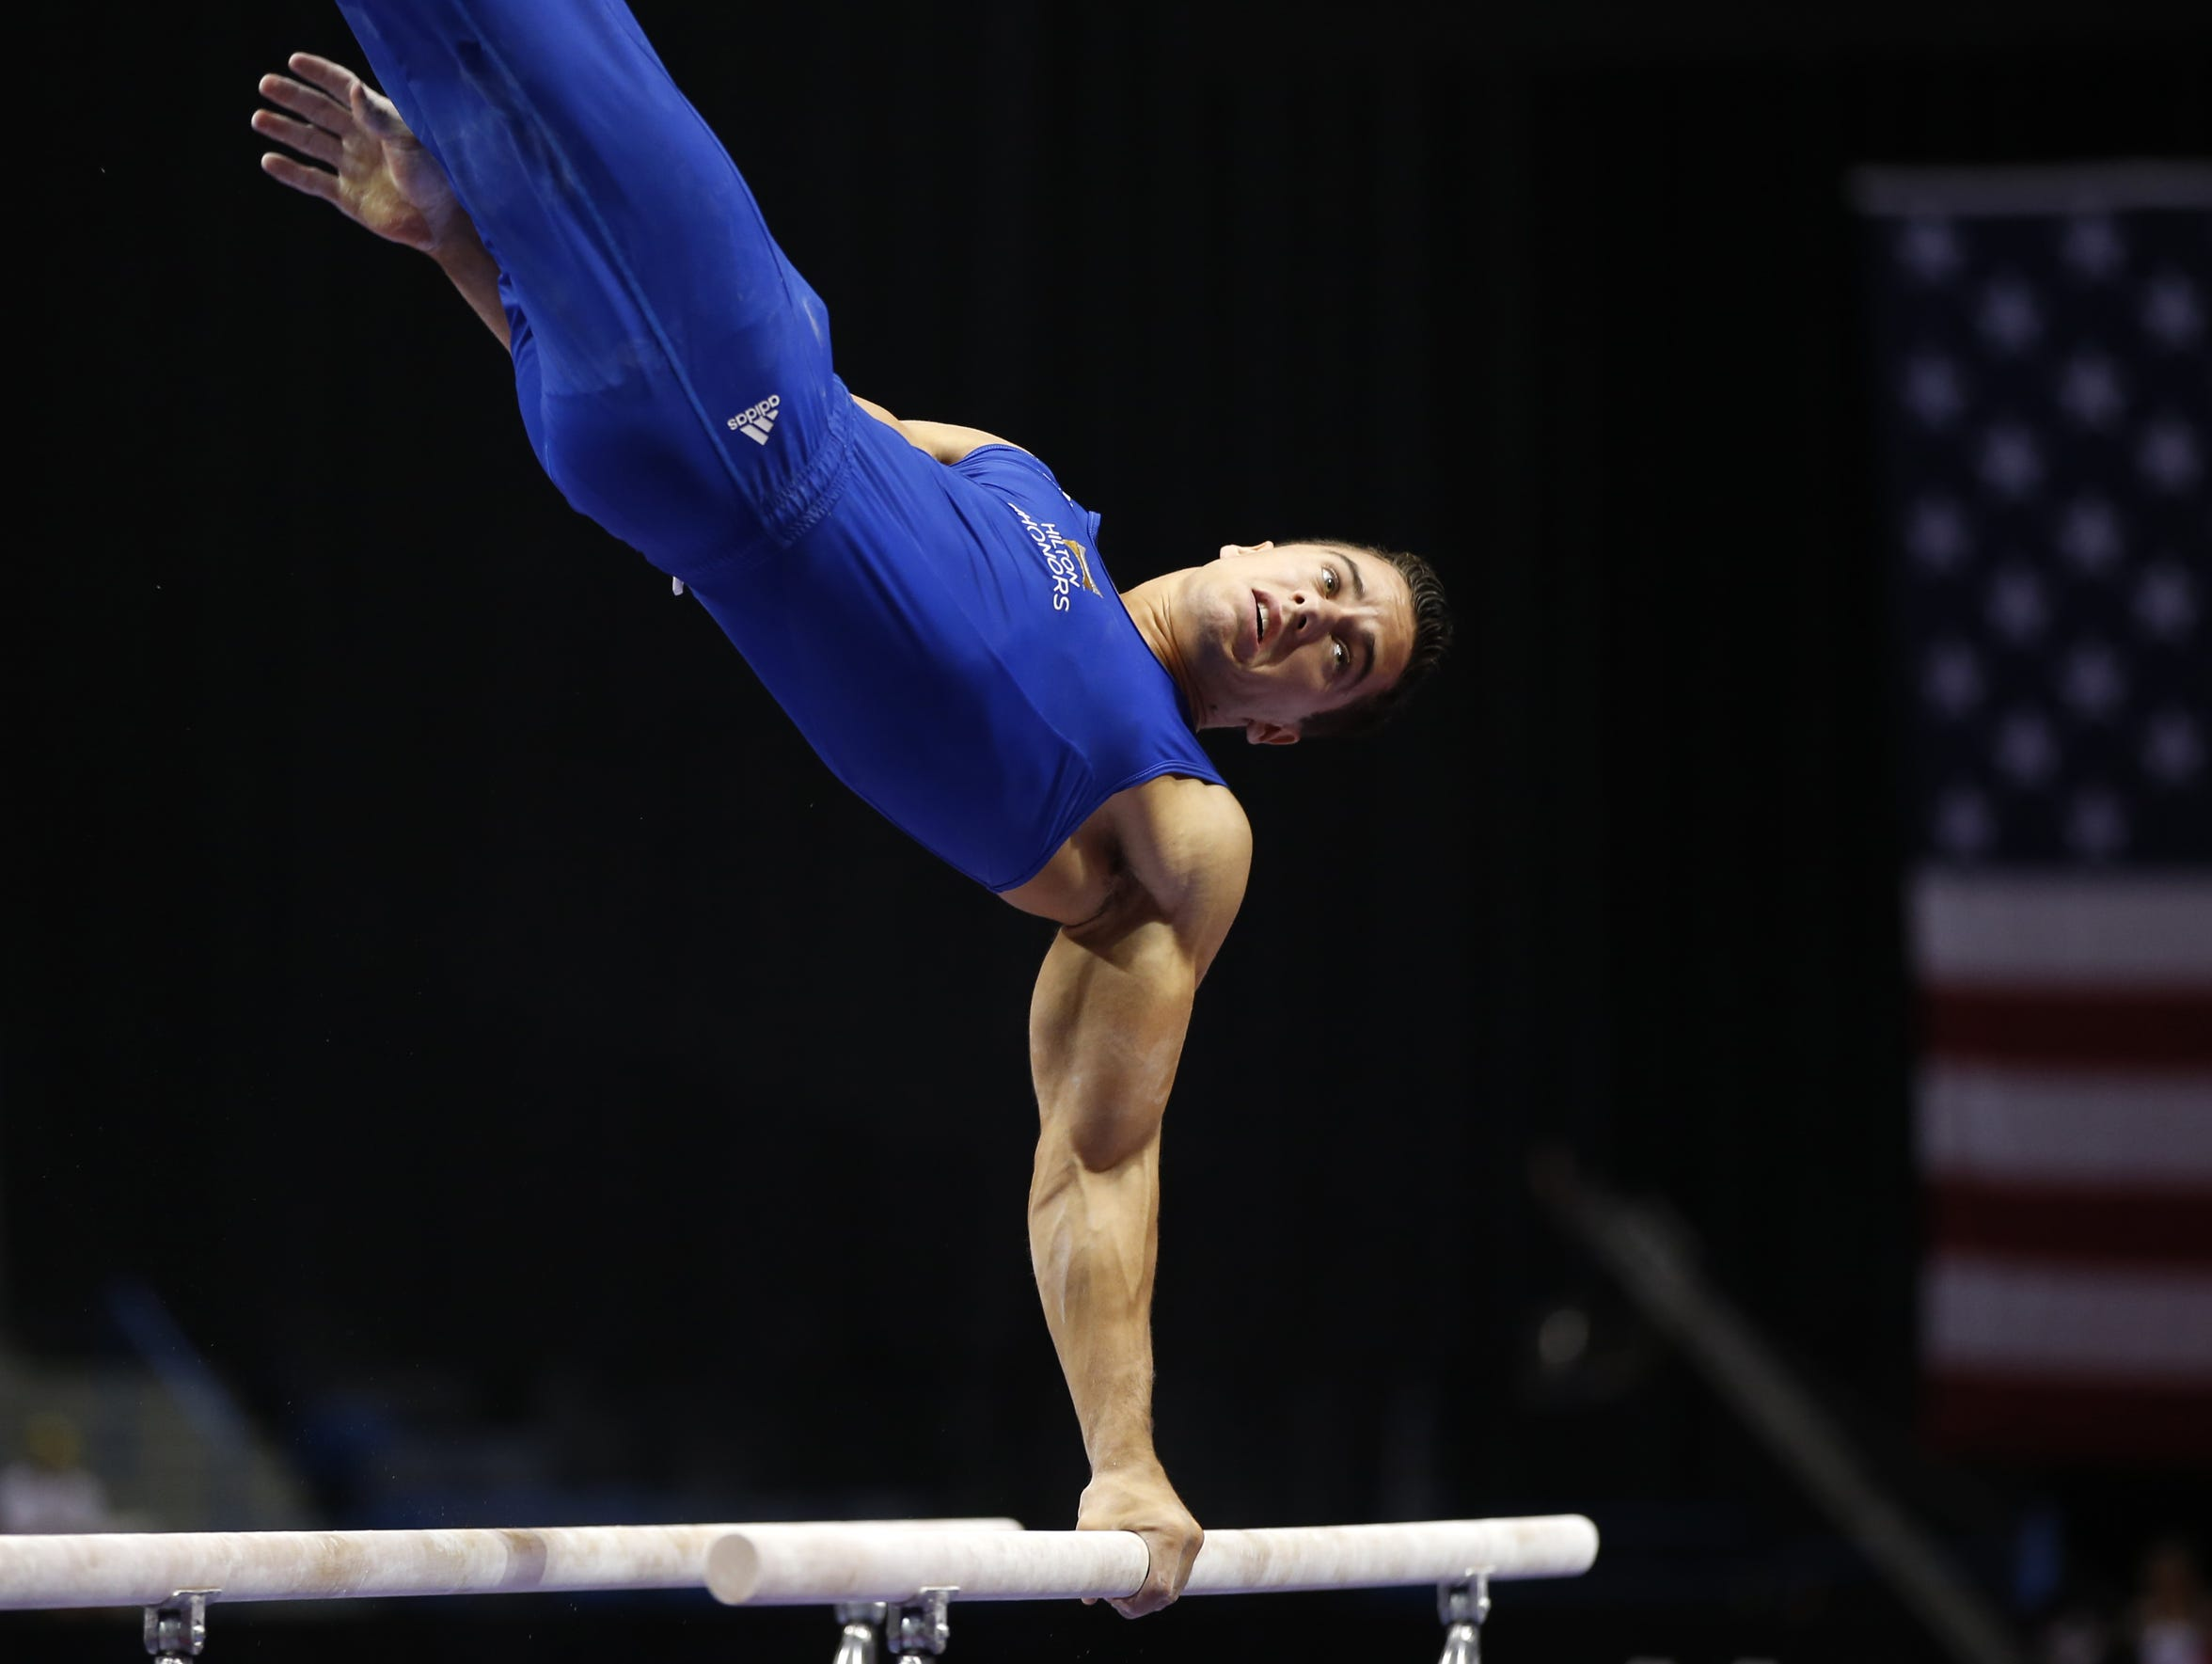 Jake Dalton competes on the parallel bars during the